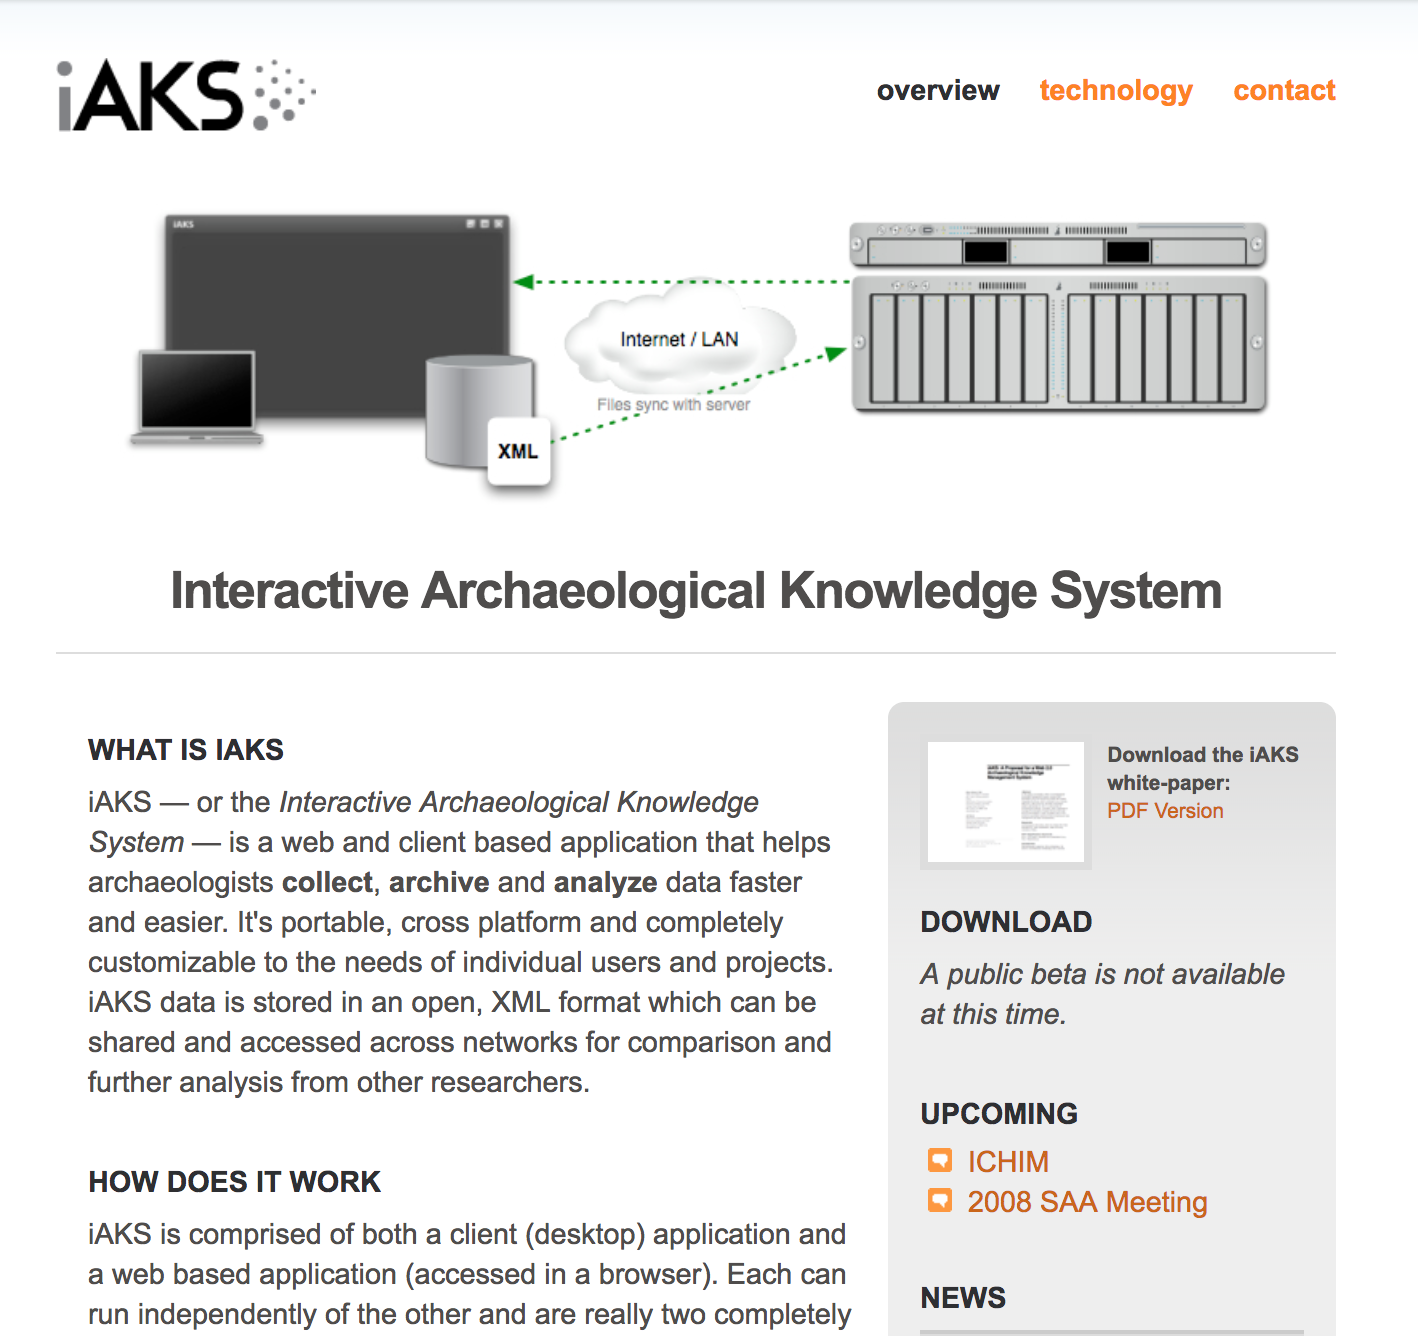 iAKS: Interactive Archaeological Knowledge System